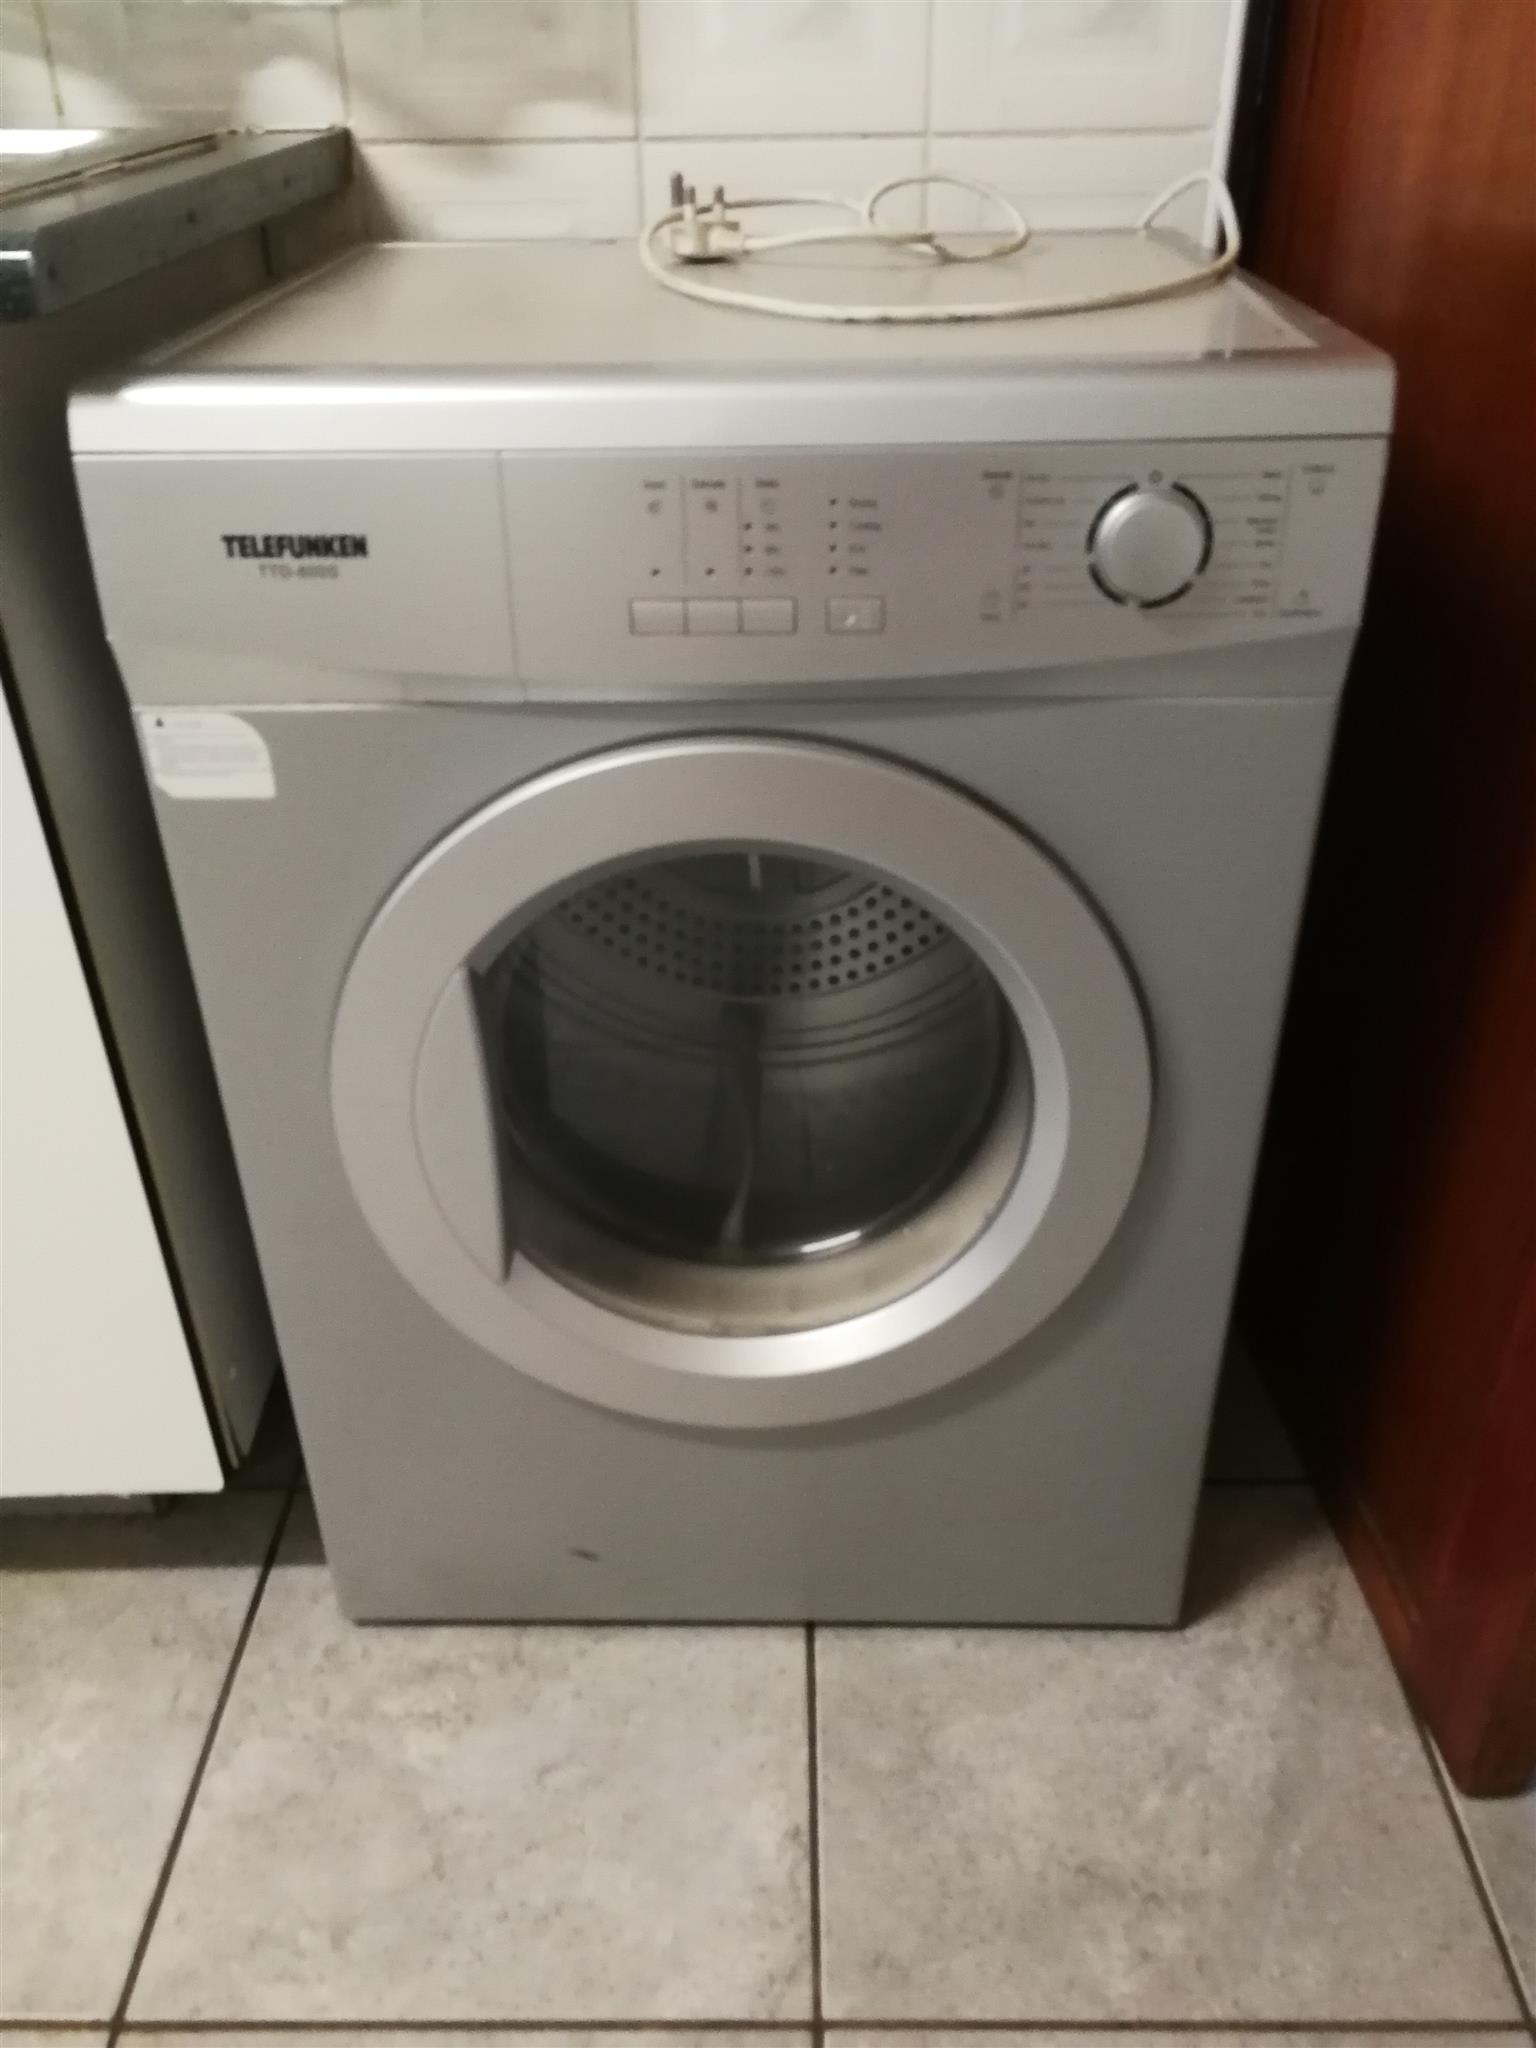 Tumble dryer Telefunken